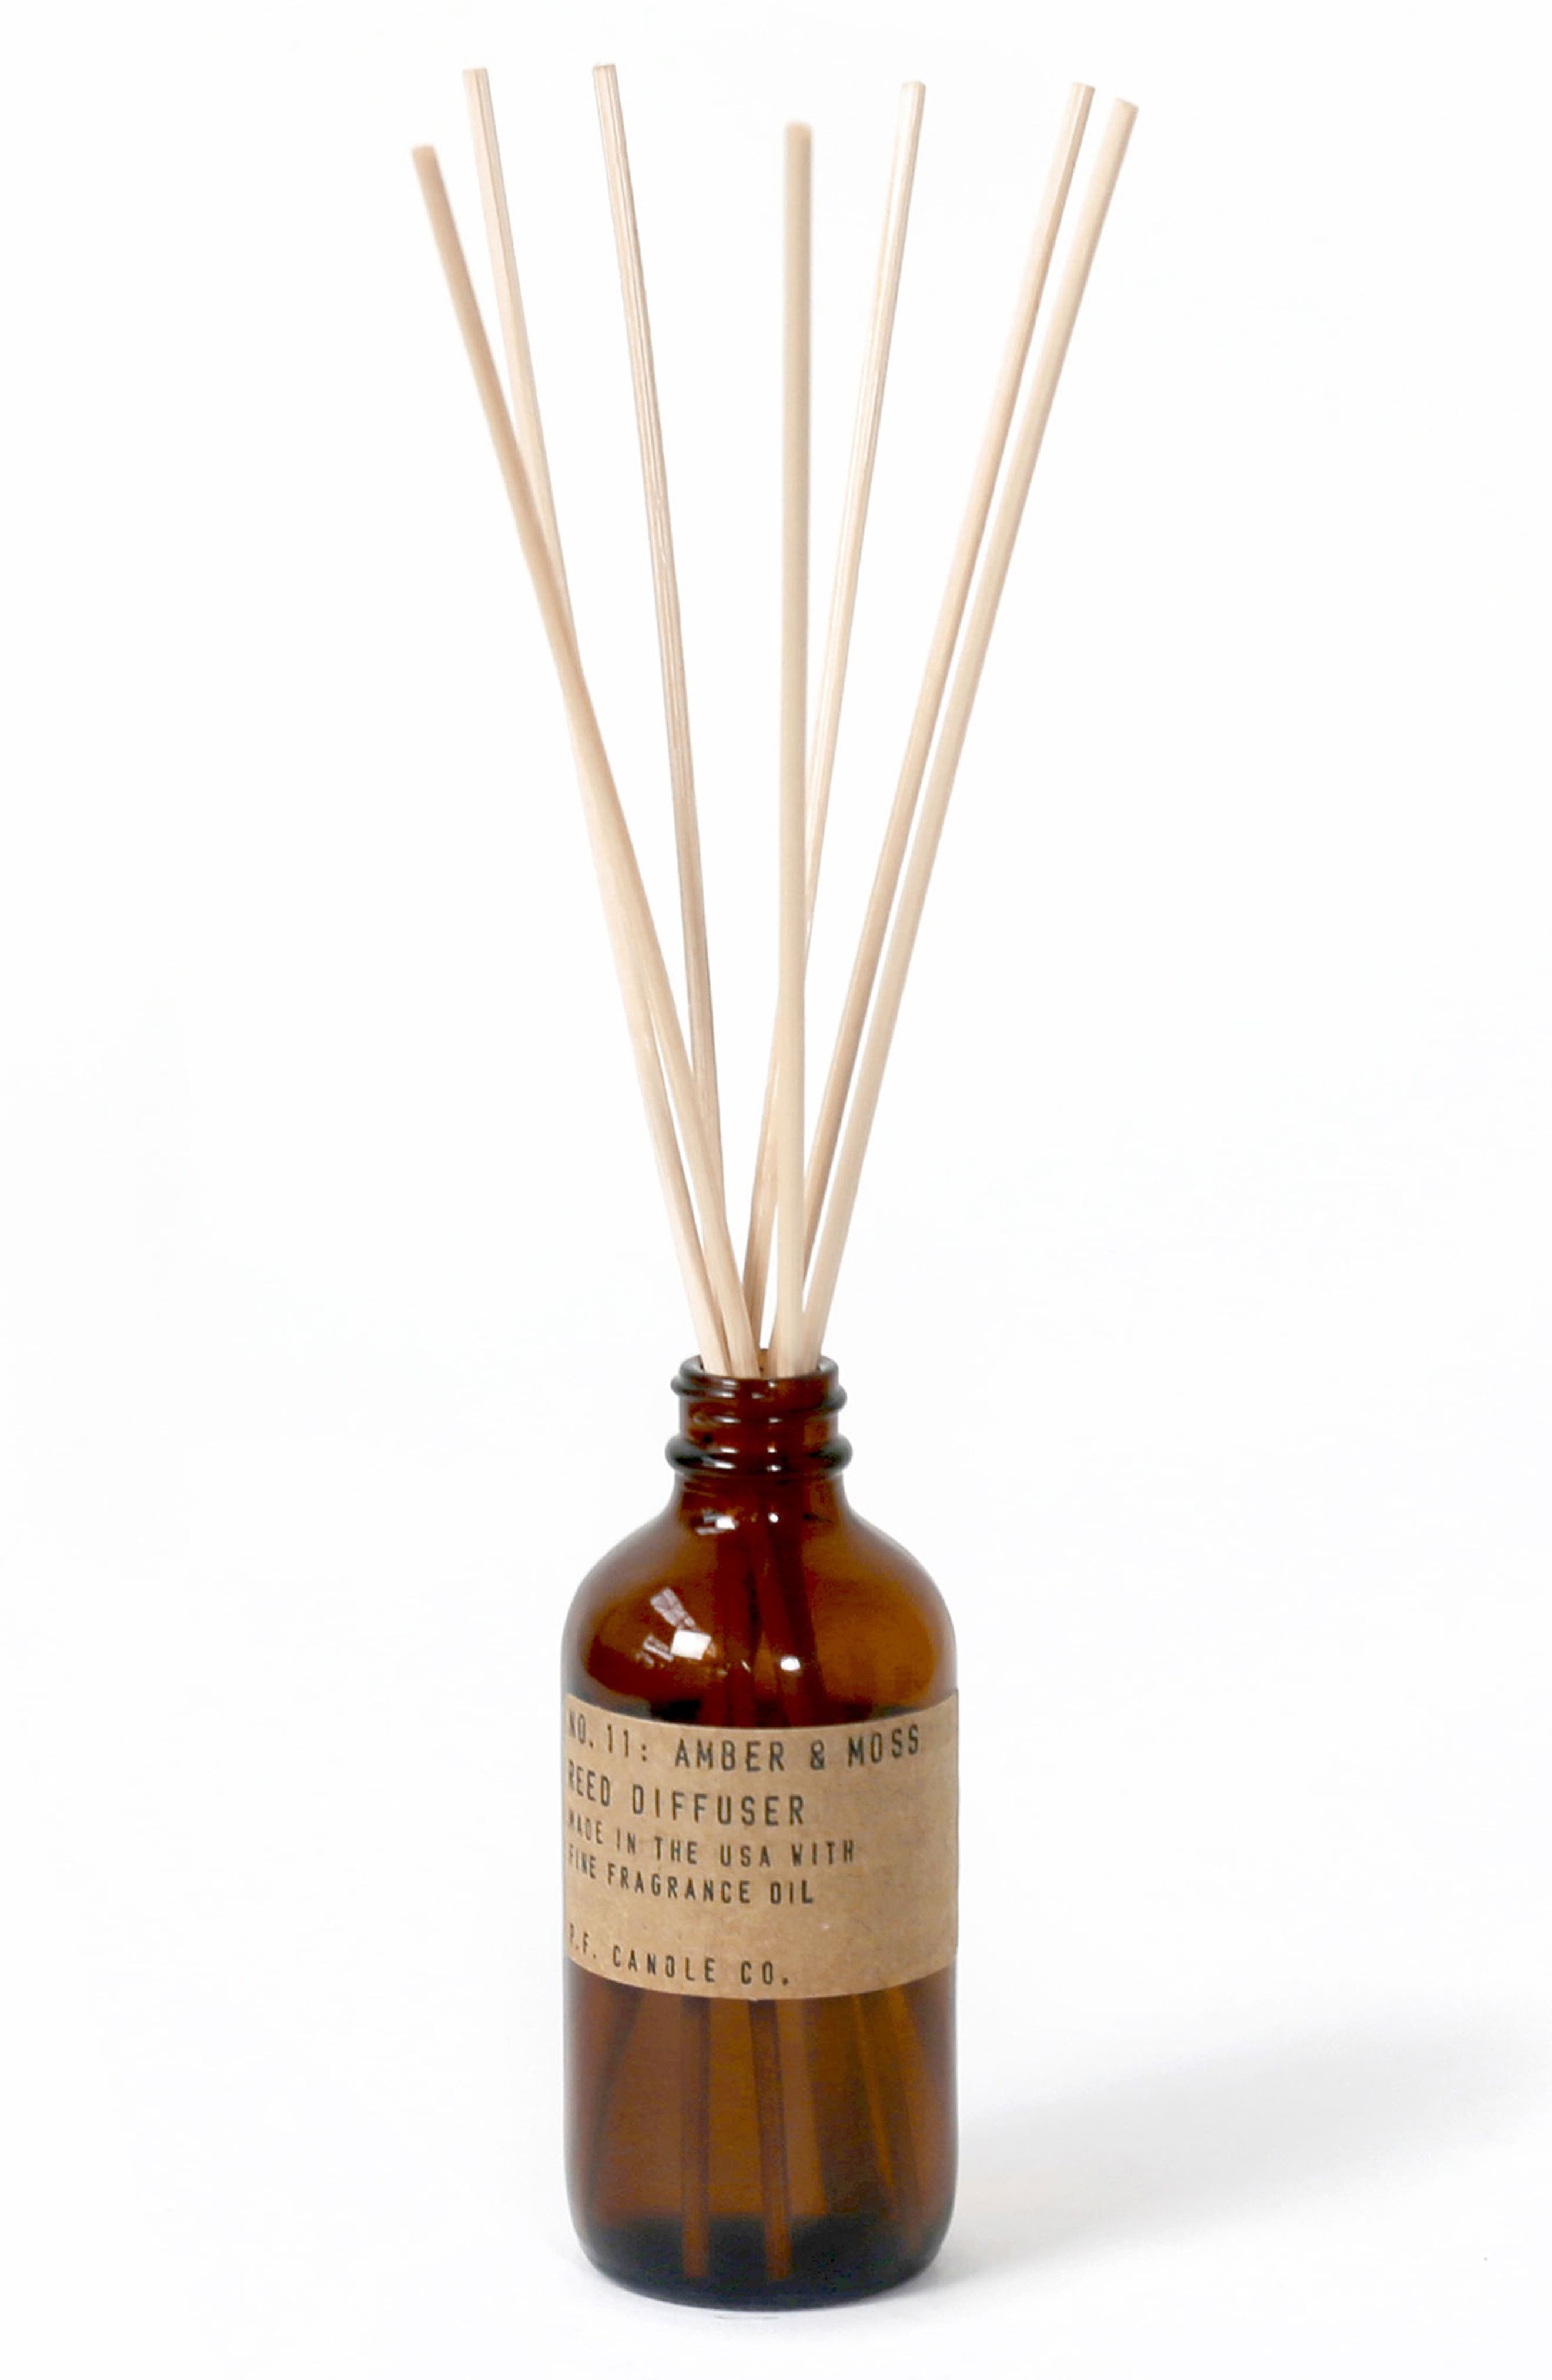 What it is: A reed diffuser presented in an apothecary-inspired amber glass bottle with a signature label and rattan reeds. Fragrance story: This scent makes you think of a weekend in the mountains with the sun gleaming through the canopy. Style: woody, aromatic. Notes:- Top: moss, lavender- Middle: sage, lavandin, orange- Bottom: amber, musk. Style Name:P.f. Candle Co. Reed Diffuser. Style Number: 5922891. Available in stores.